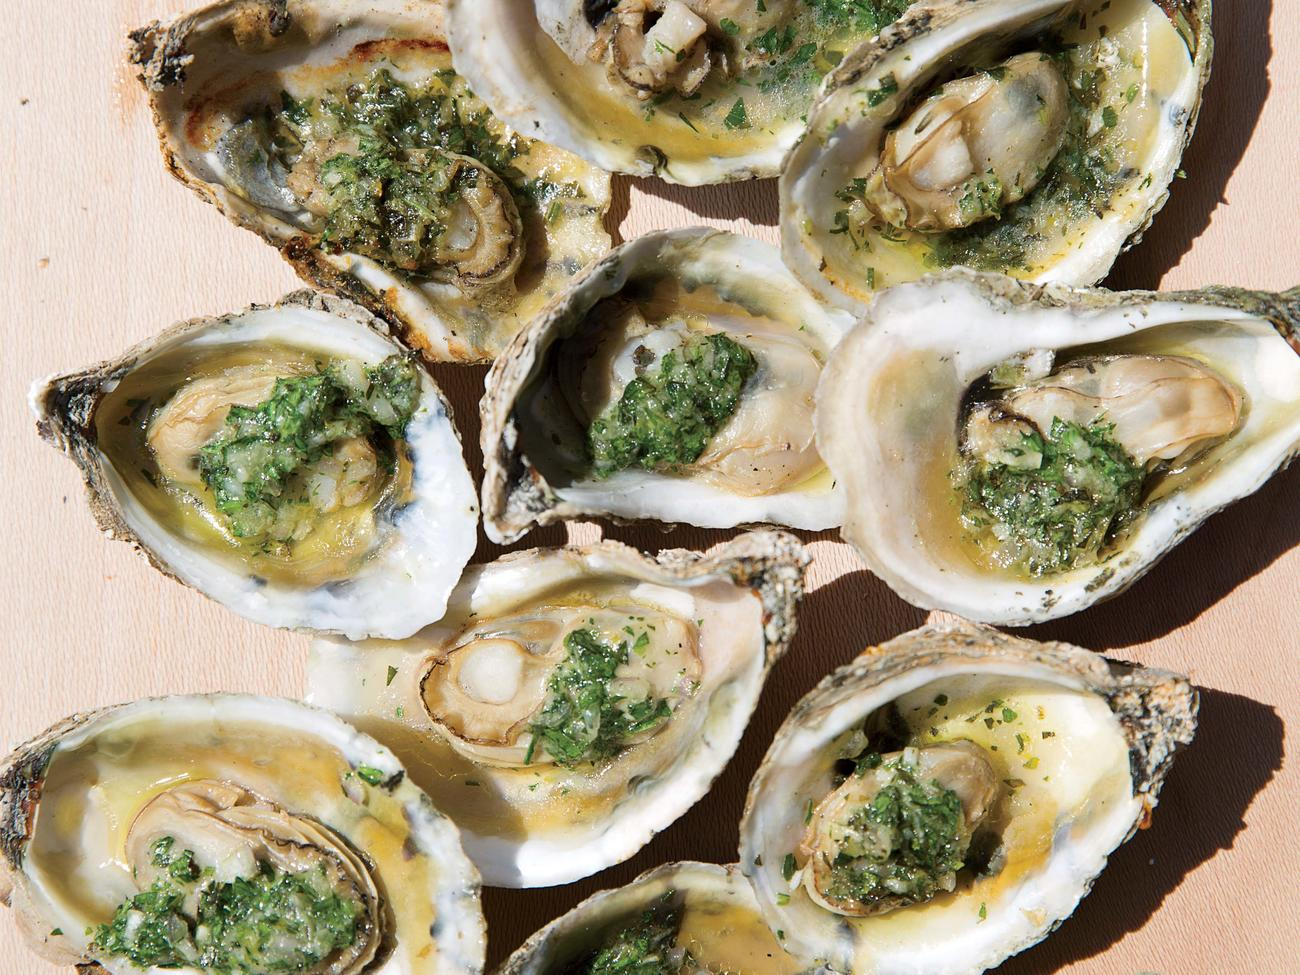 Grilled Oysters with Tarragon-Parsley Butter